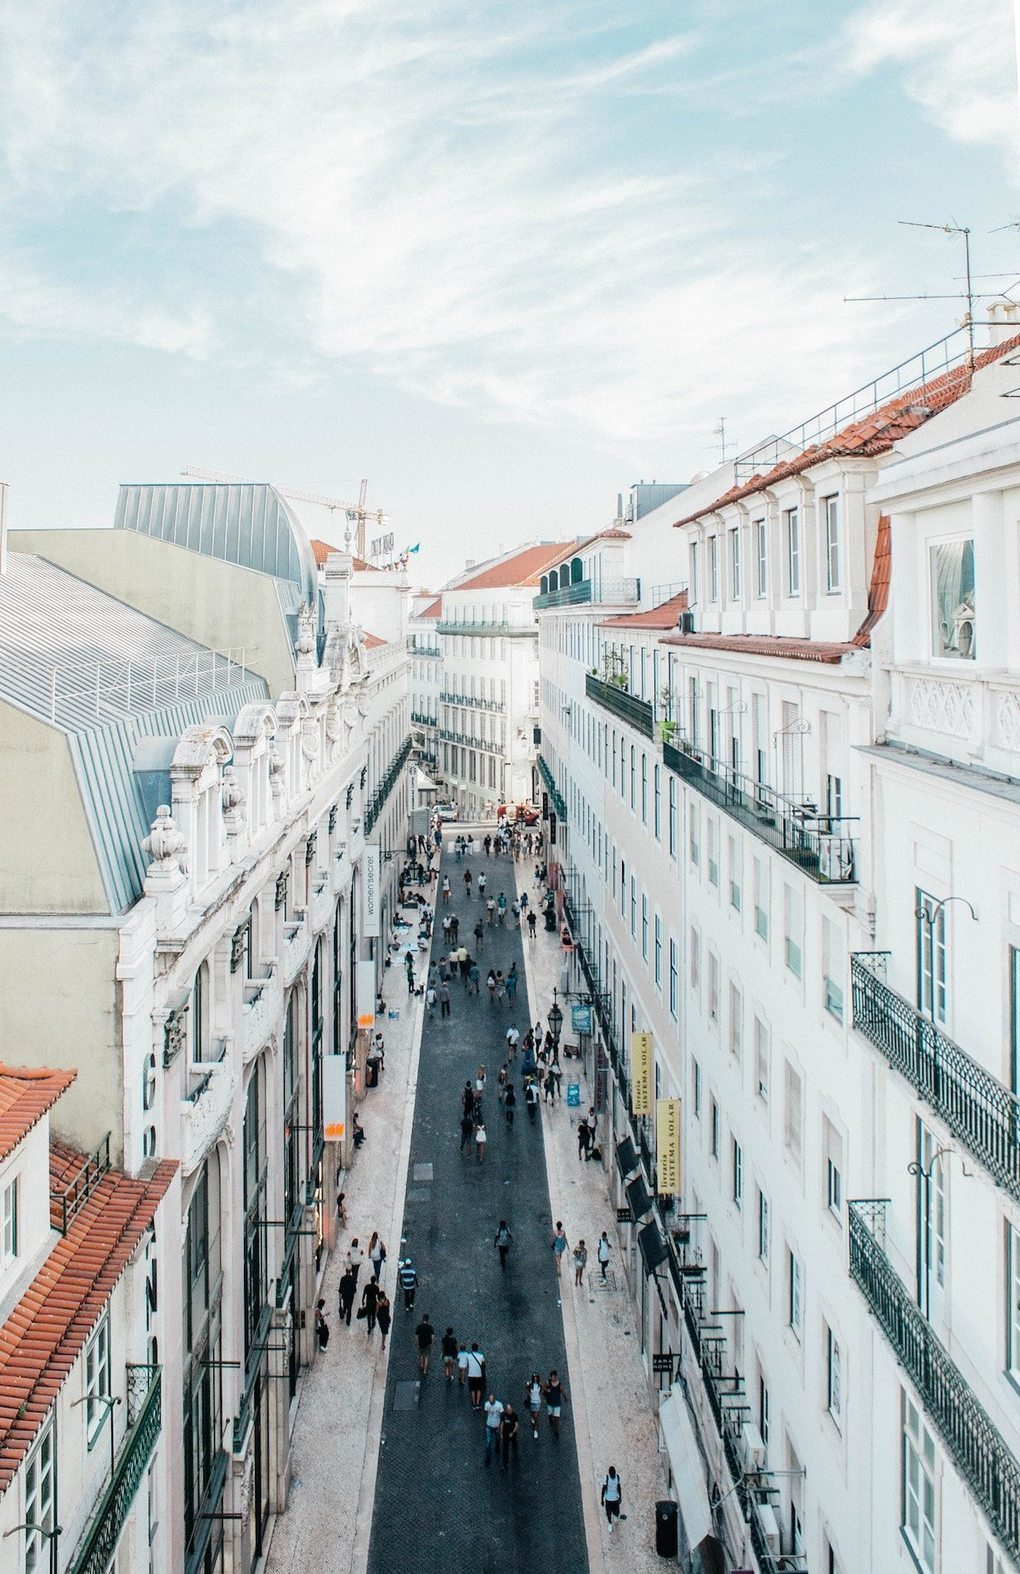 5 Cities to Visit in Portugal (That Aren't Lisbon or Porto) - Darling Magazine